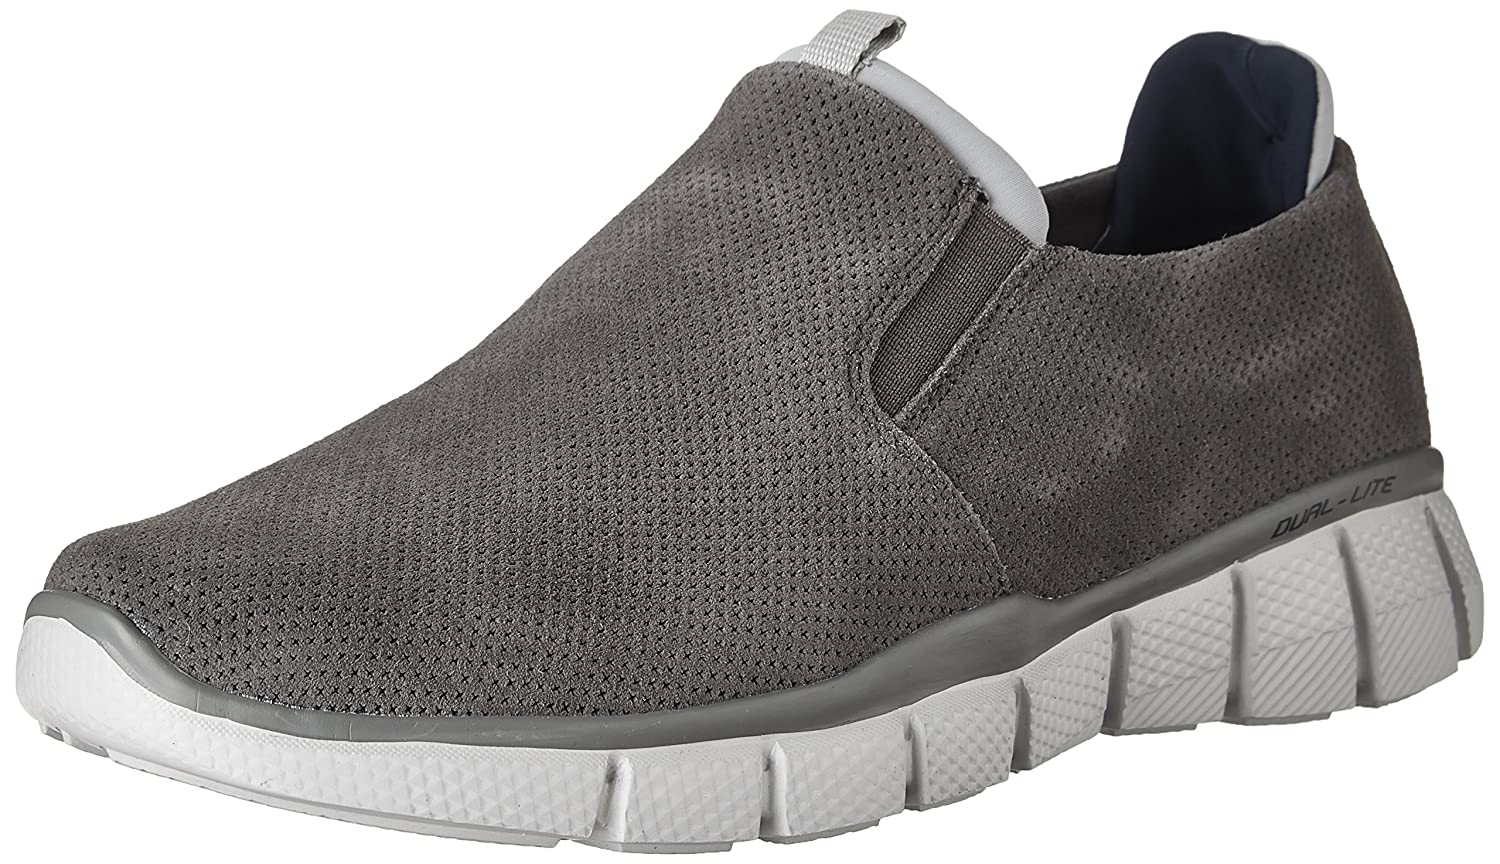 Skechers 51545 Herren Slipper  395 EU D(M)  |Anthrazit